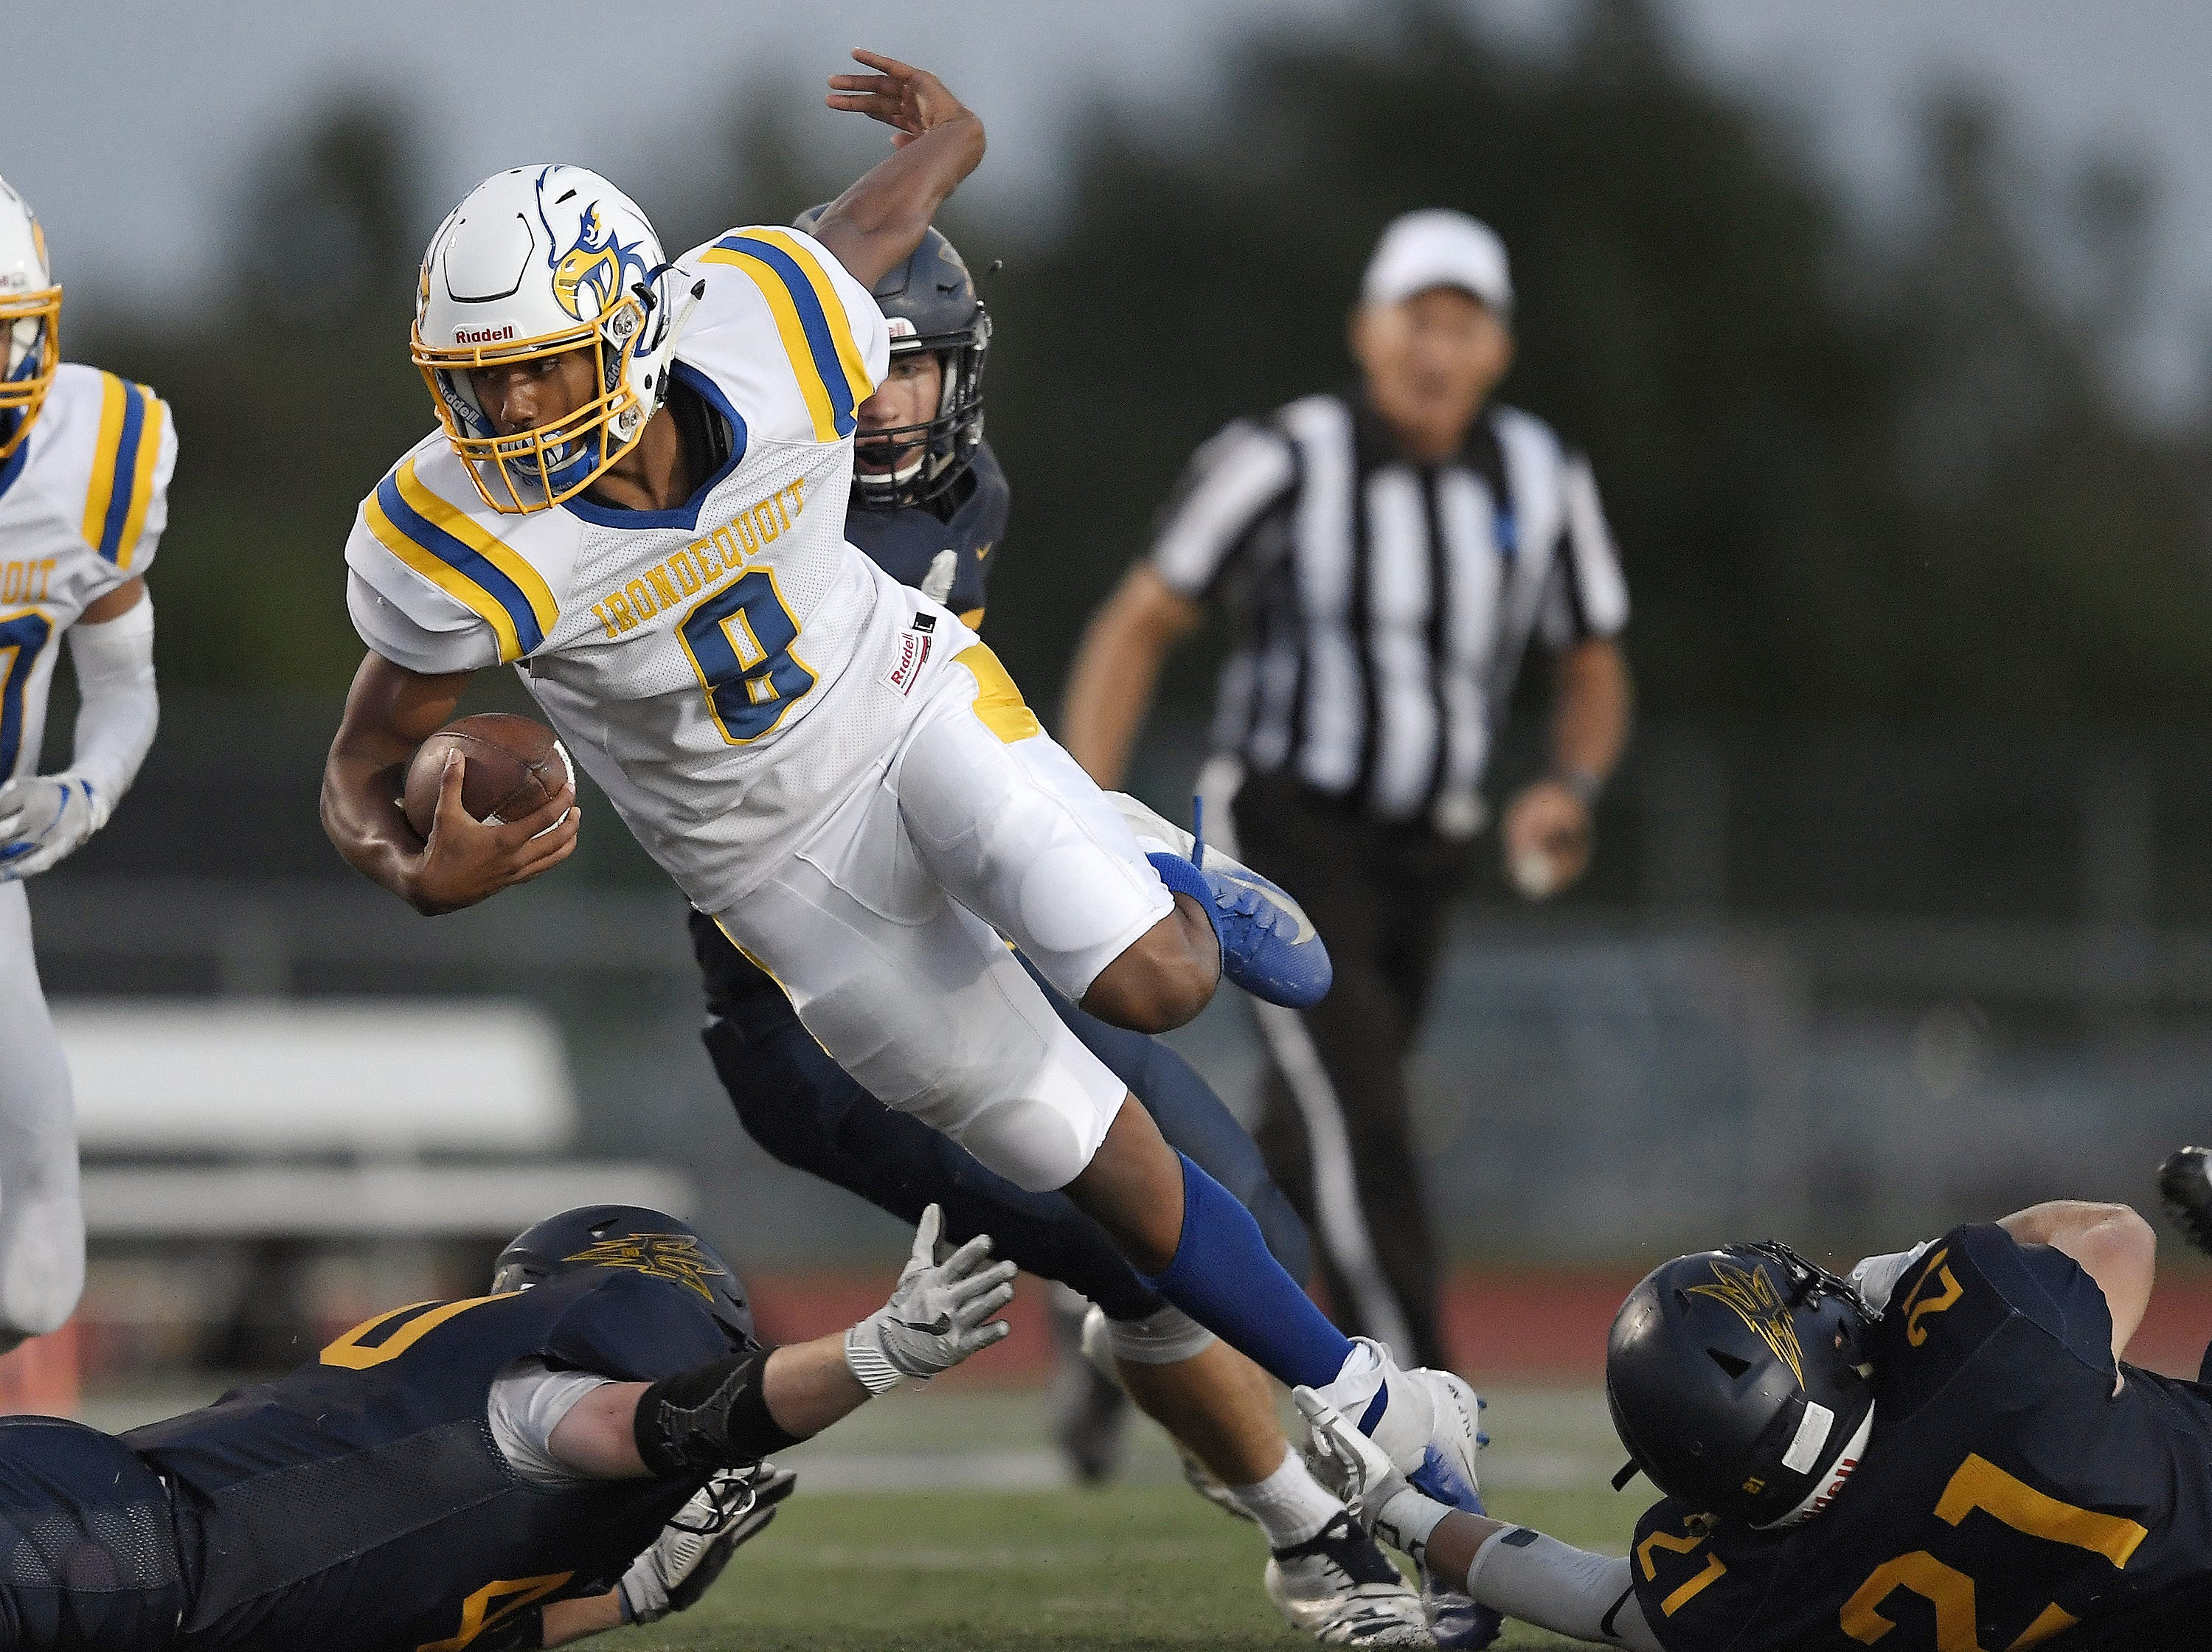 Irondequoit's Freddy June, Jr. is tripped up by Victor's Camden Hay during a regular season game played at Victor High School, Sunday, Sept. 23, 2018. Irondequoit beat Victor 28-21.